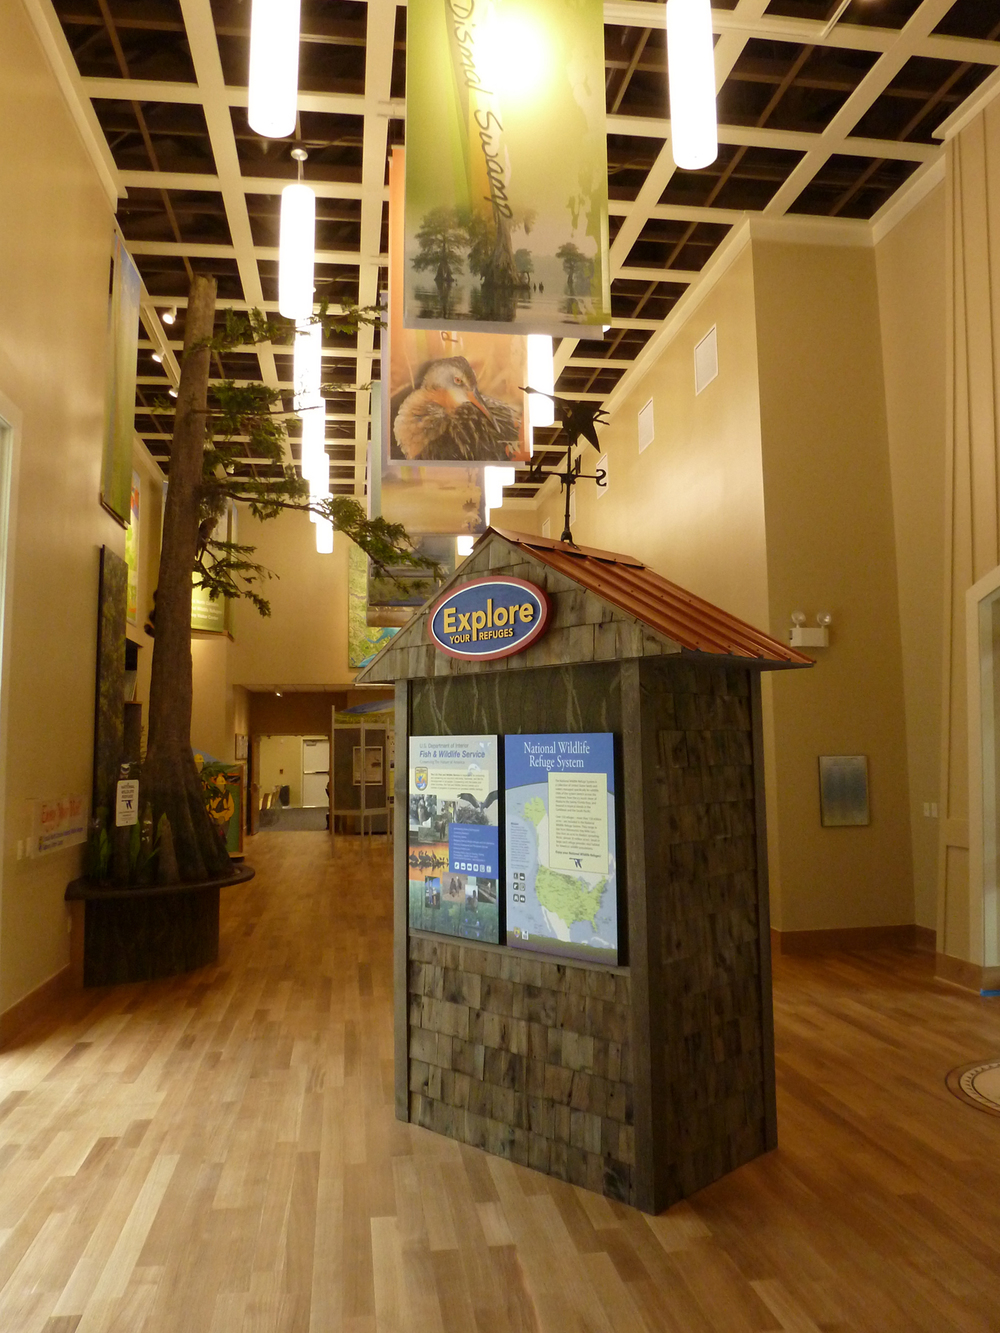 Standard USFWS panels invite visitors to explore their refuges with an interactive touchscreen display.